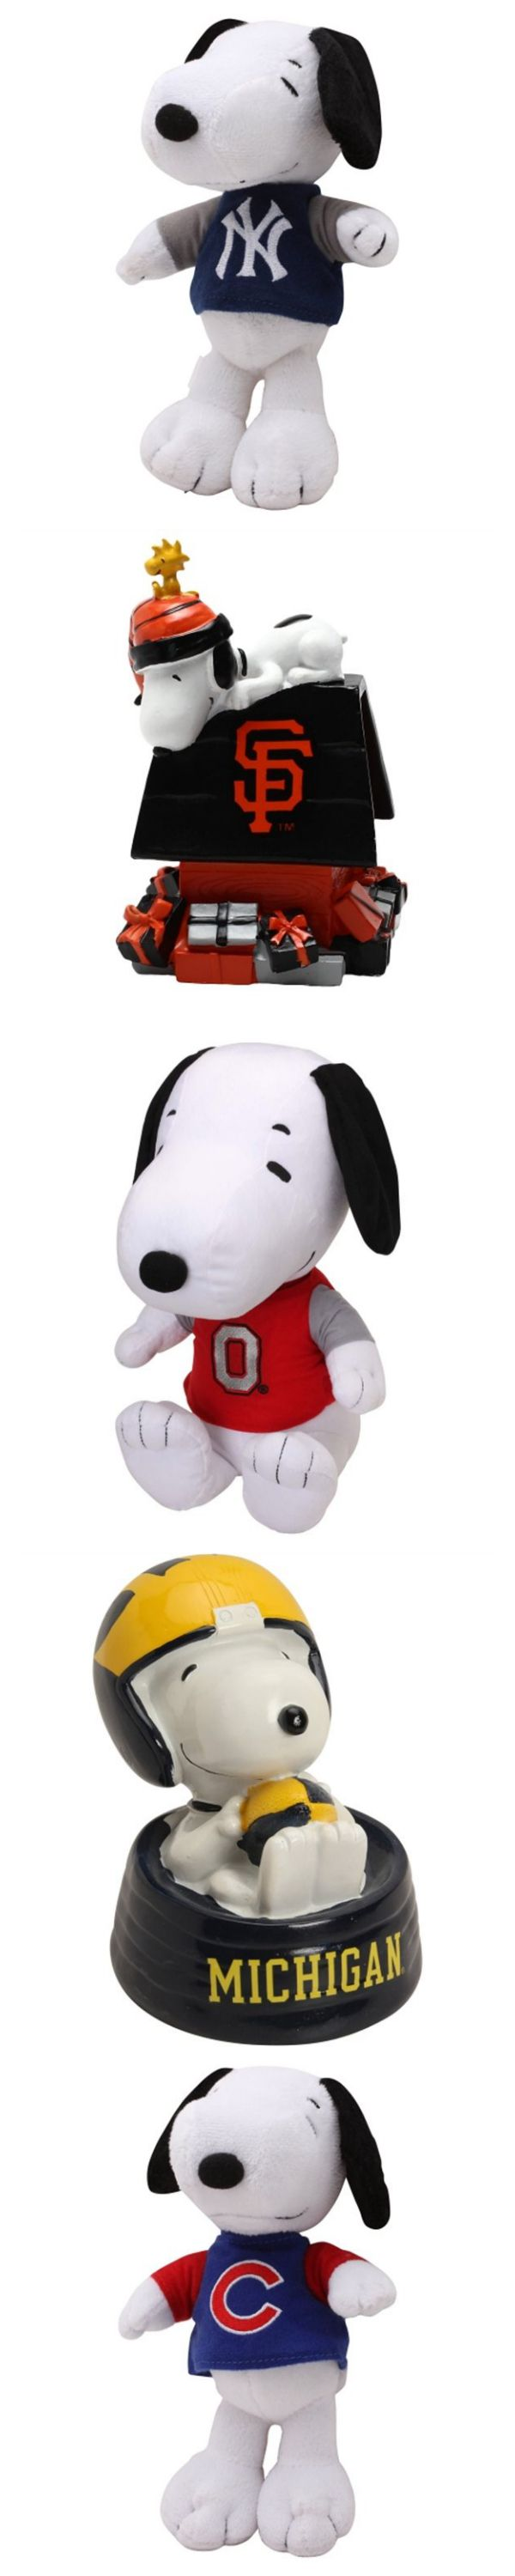 Snoopy and sports fans unite your passions! Find Snoopy gifts for both MLB baseball fans and college sports fans. Snoopy will cheer on your favorite team with plush toys, banks and Christmas ornaments. Start shopping at CollectPeanuts.com and support our site.